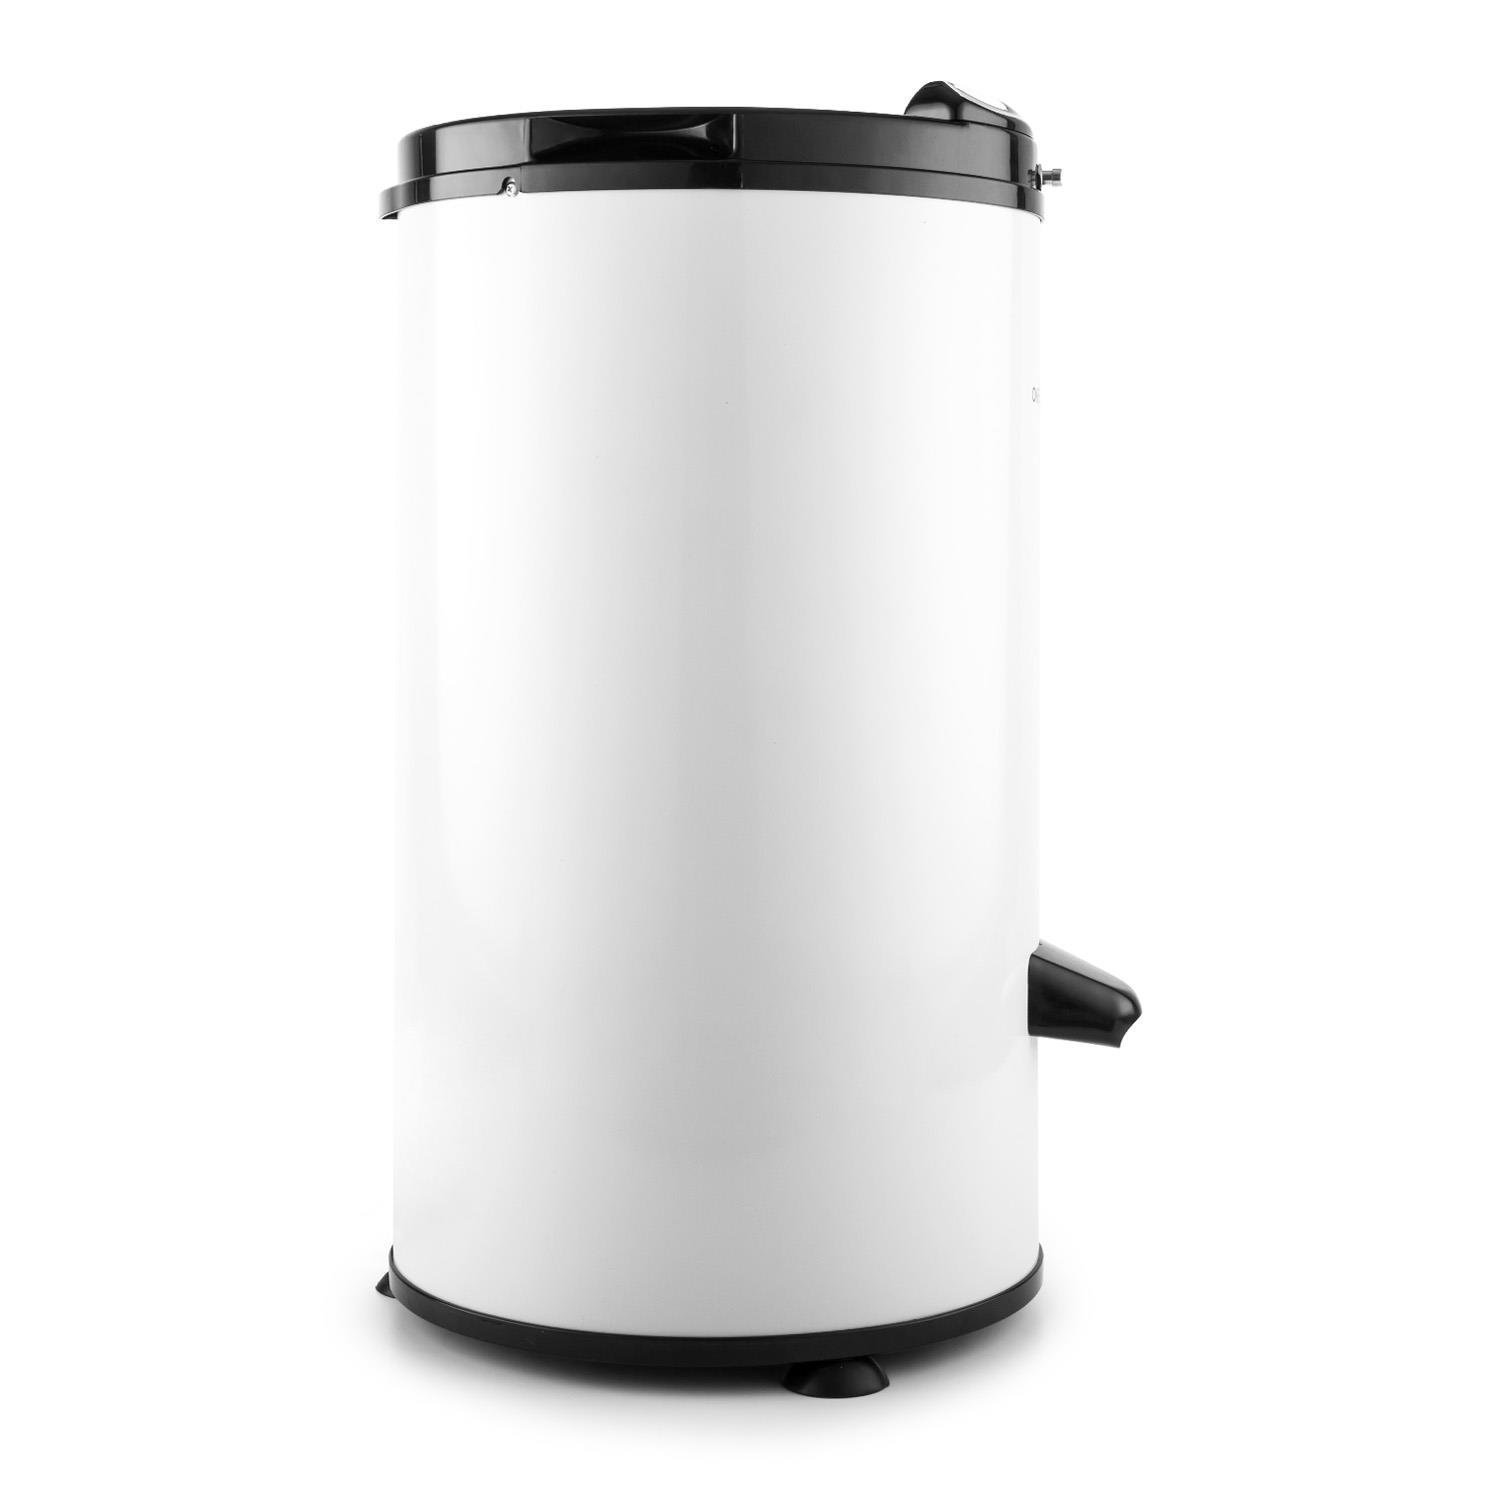 Panda 3200 rpm Portable Spin Dryer 110V//22lbs Stainless Steel SP22